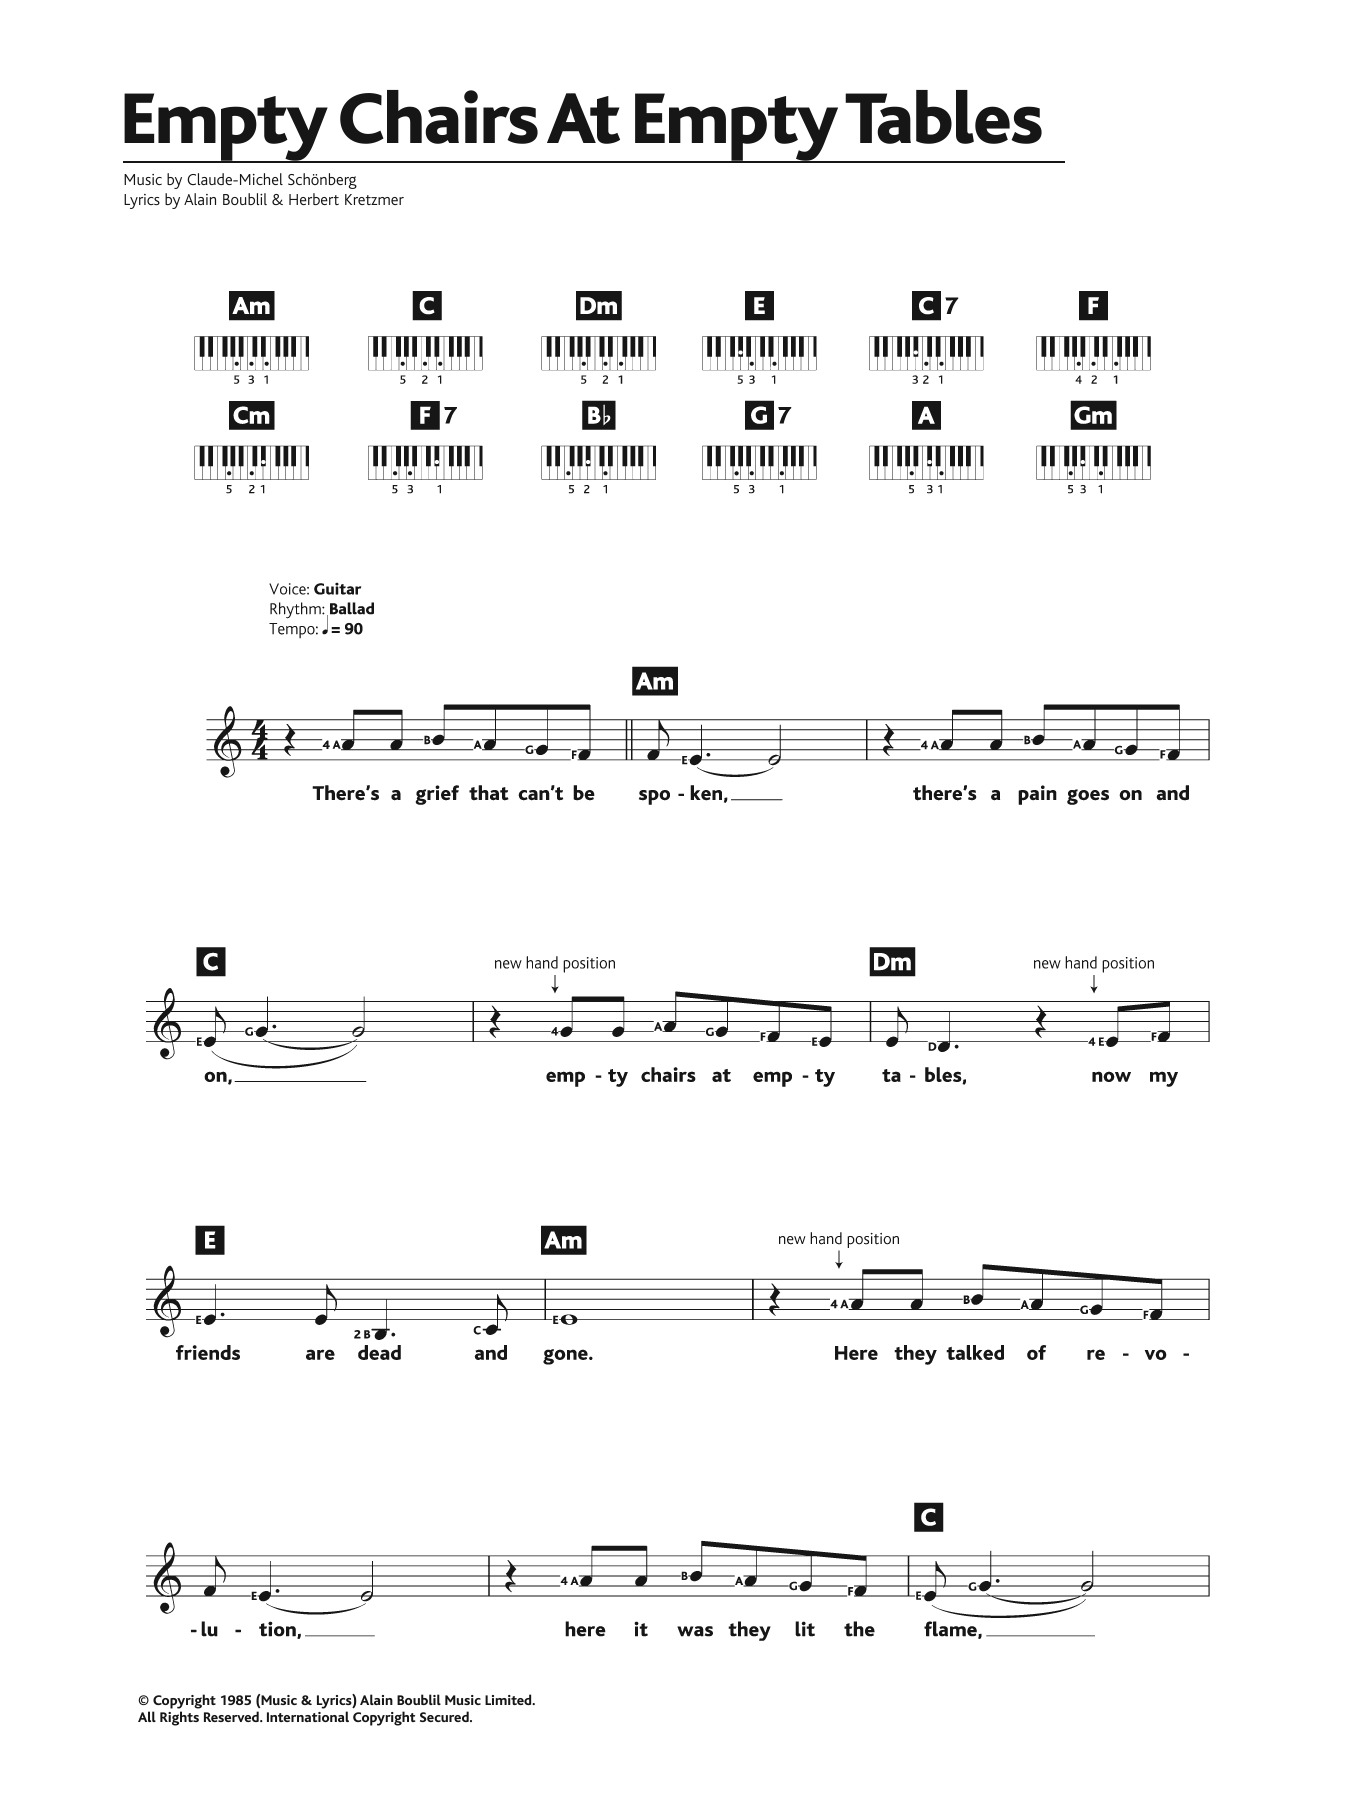 Empty chairs at empty tables sheet music piano pdf